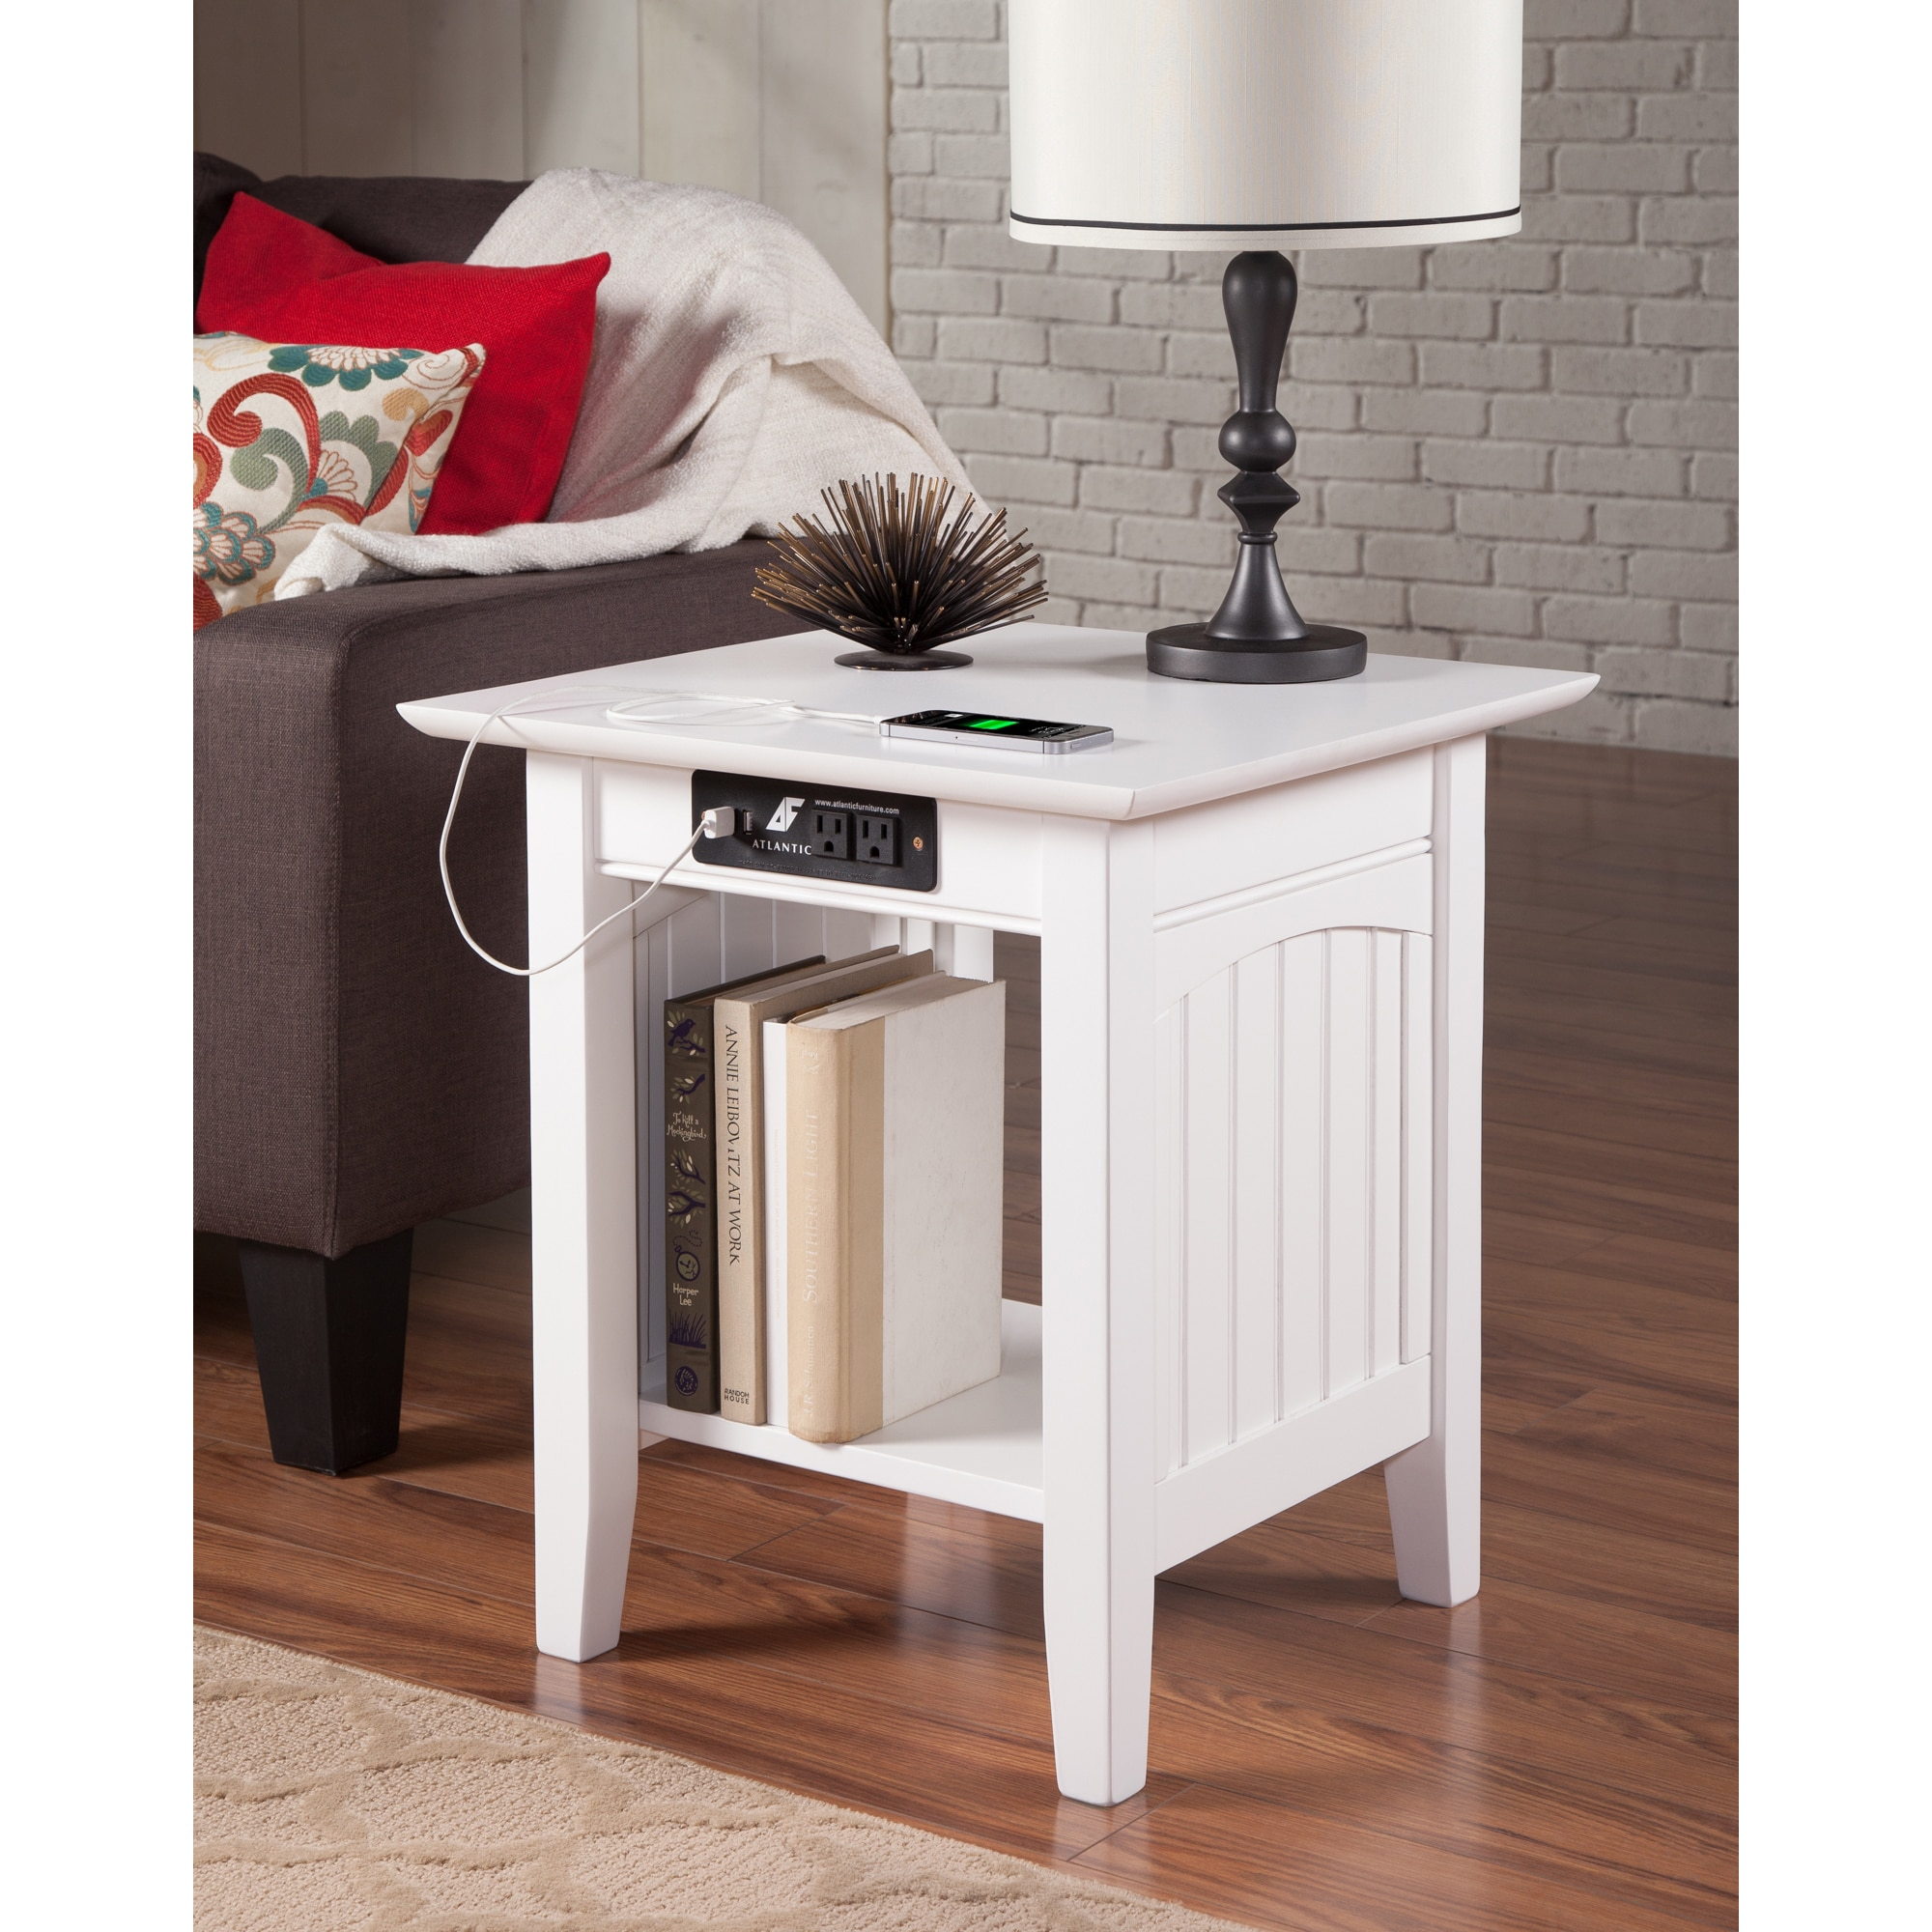 Atlantic Furniture Nantucket End Table with Charging Station in White